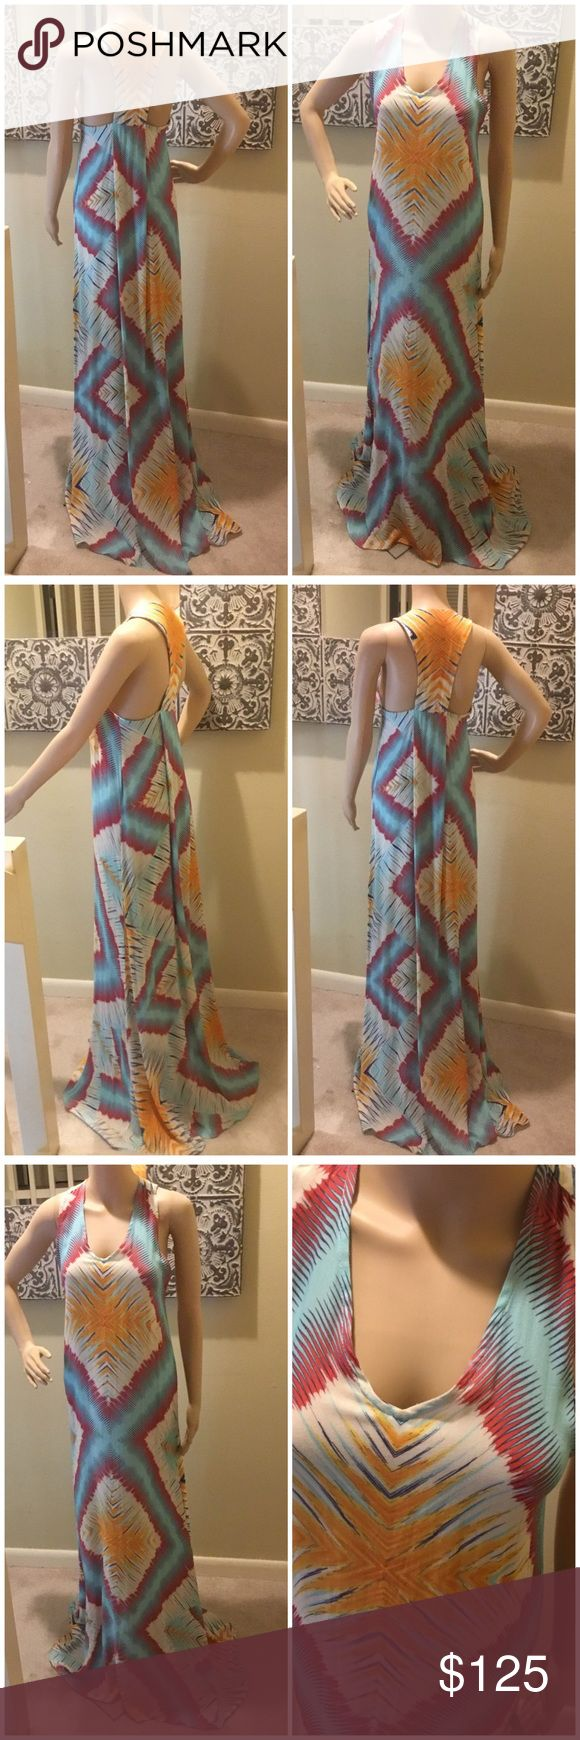 Alexis Small Maxi Dress Diamond shaped pattern with broad swaths of gold and purple.  Other colors in dress are light blue, dark blue, orange and white.  100% viscose. Excellent condition.  Great for the beach, vacation, cruise, summer party or just every day wear. Alexis Dresses Maxi